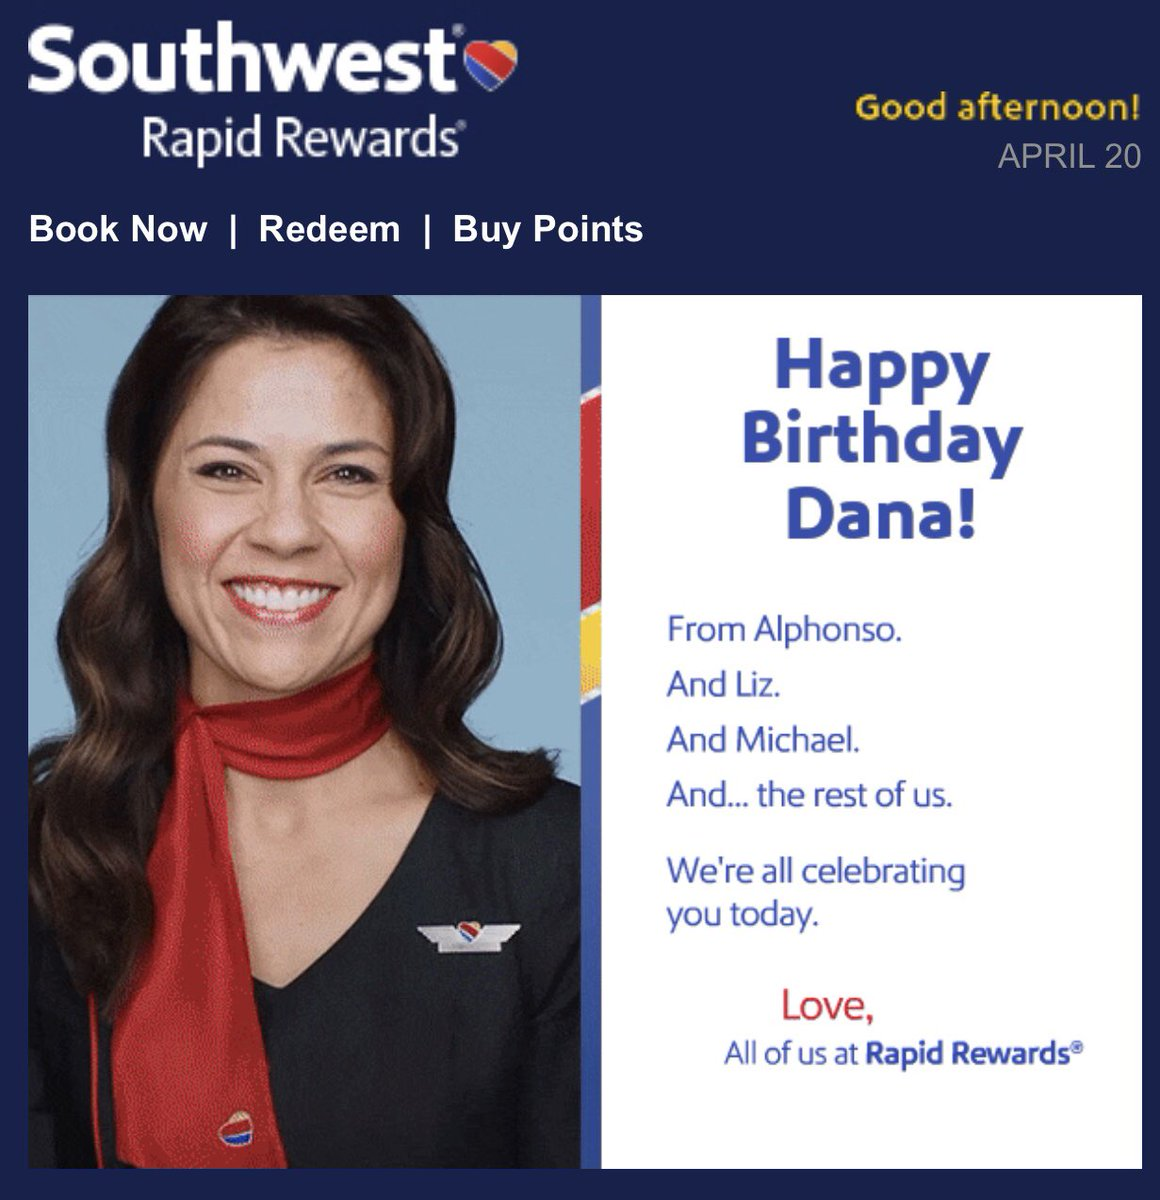 test Twitter Media - Thanks for the bday wishes Alphonso, Liz and Michael. Let's celebrate on my next @southwestair flight! #iflyswa #cocktailsforeveryone https://t.co/6x2H39z5uH